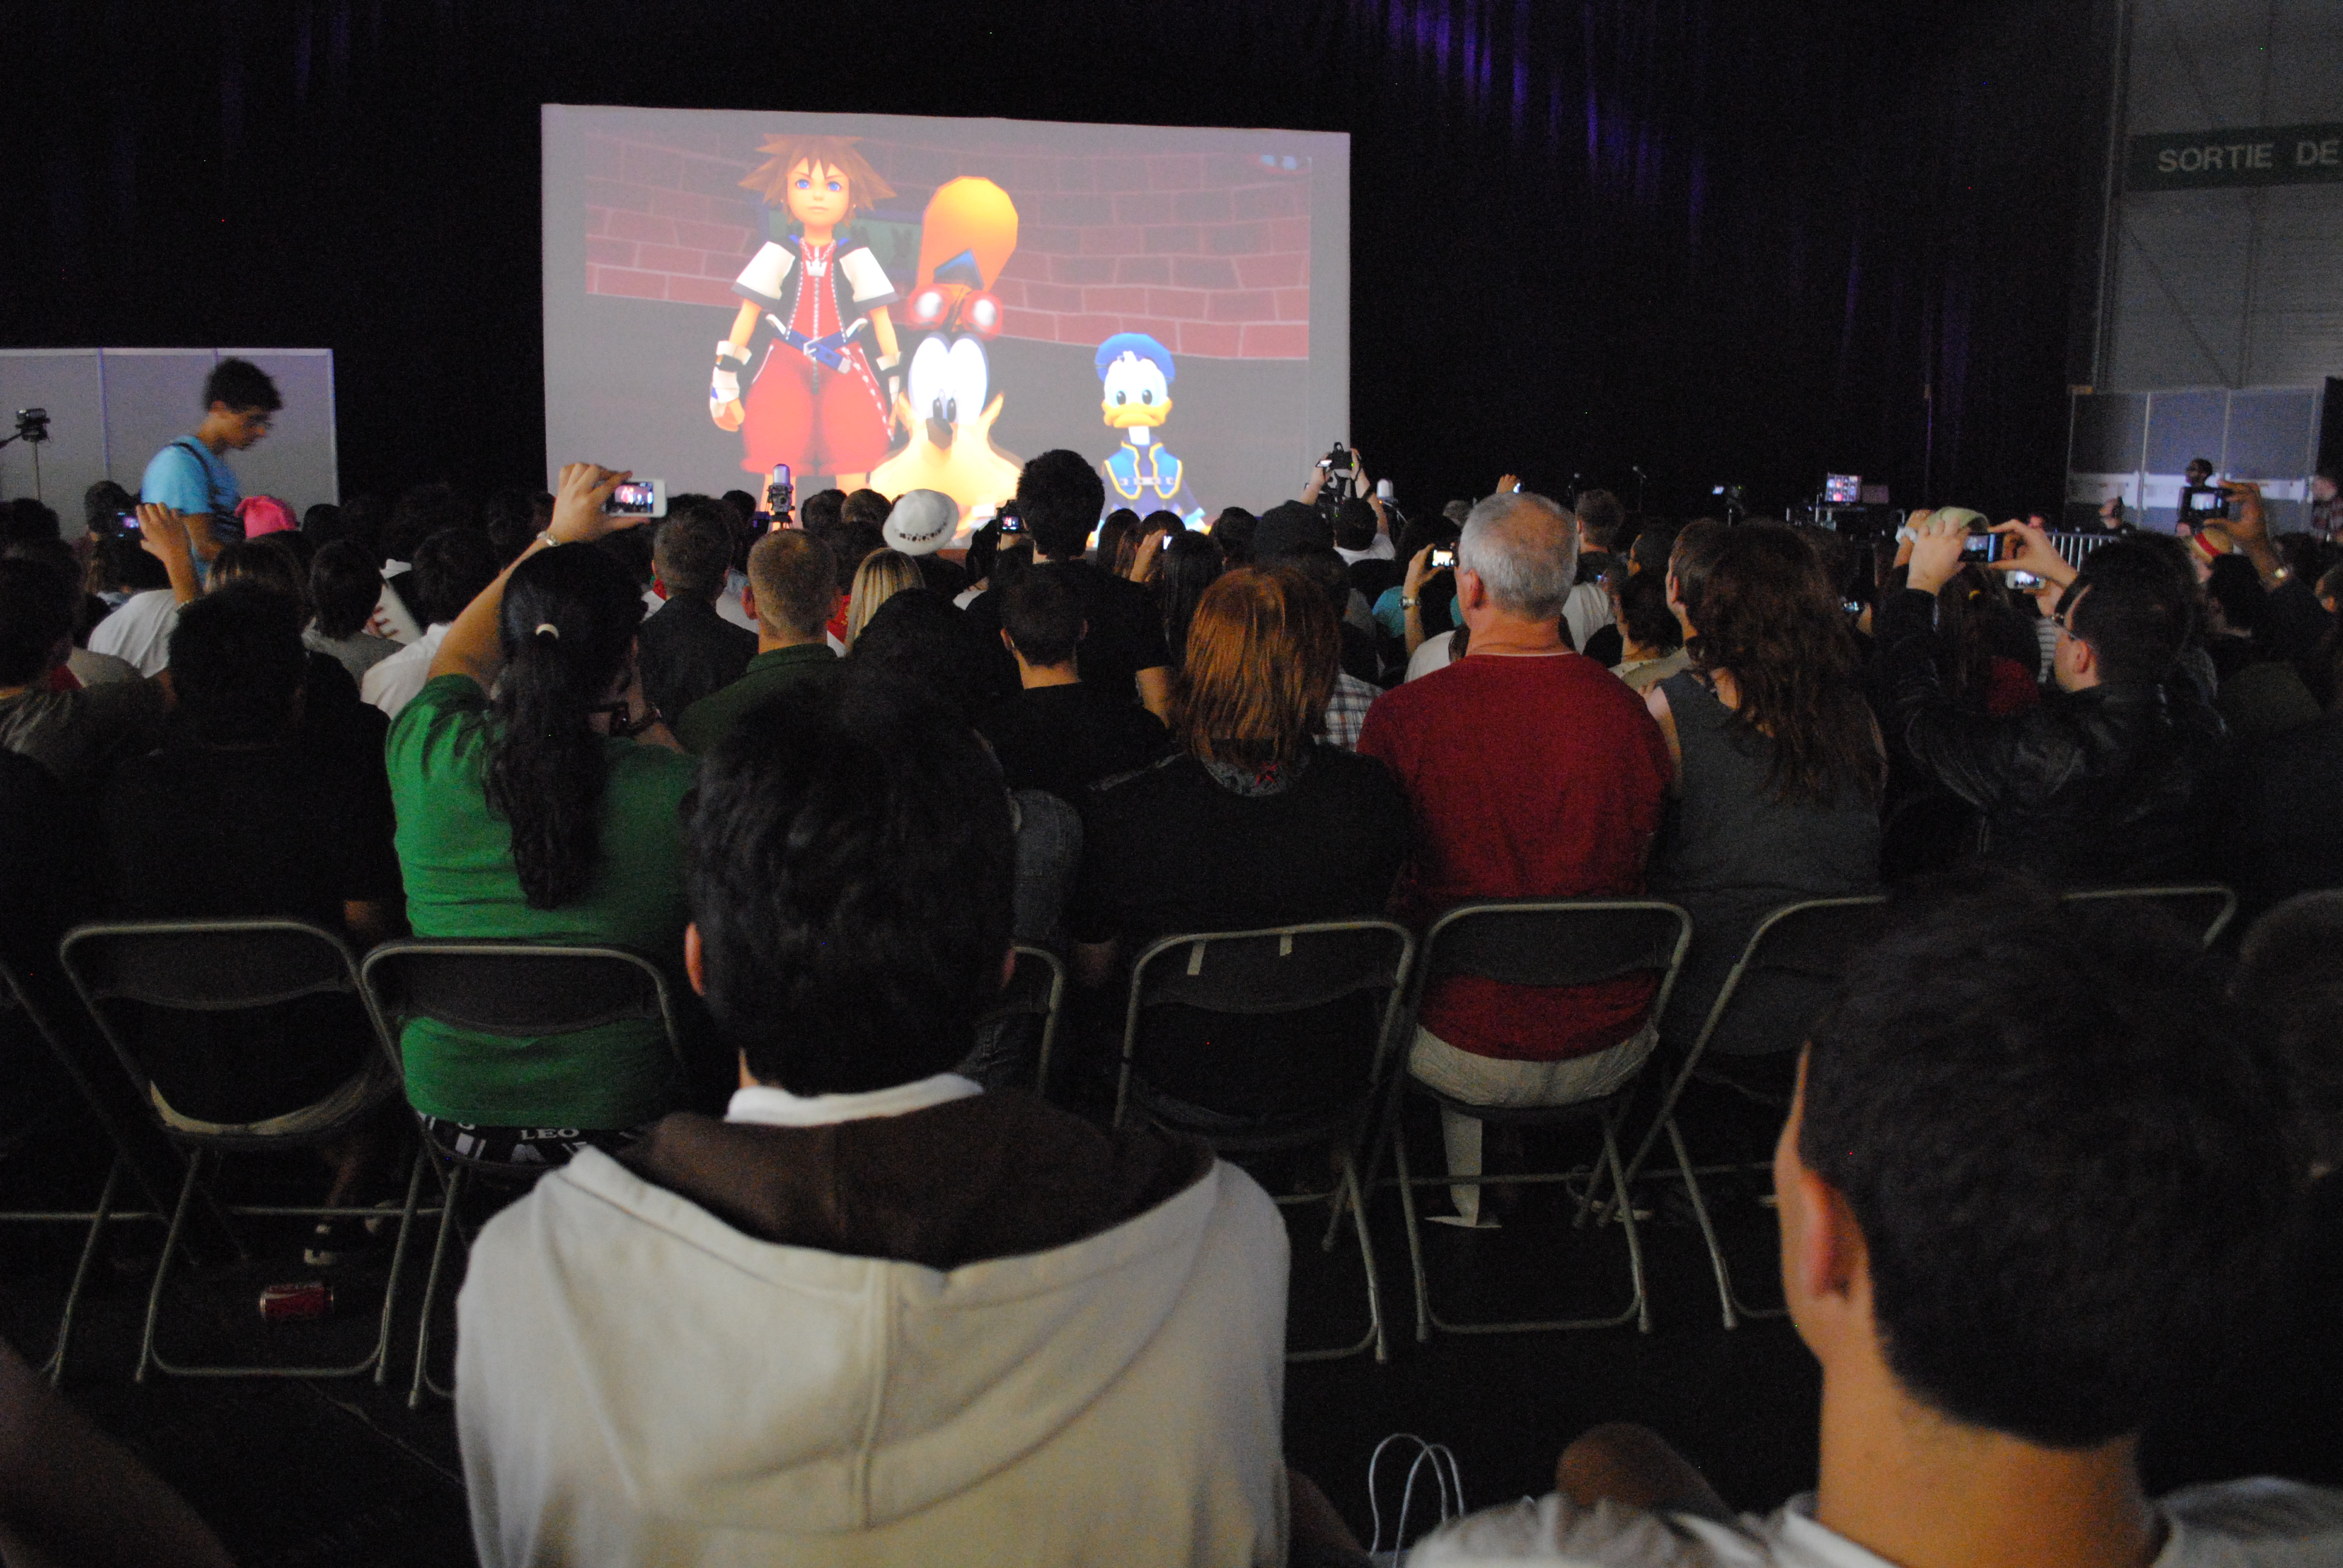 japan-expo-2013-conference-square-enix-03